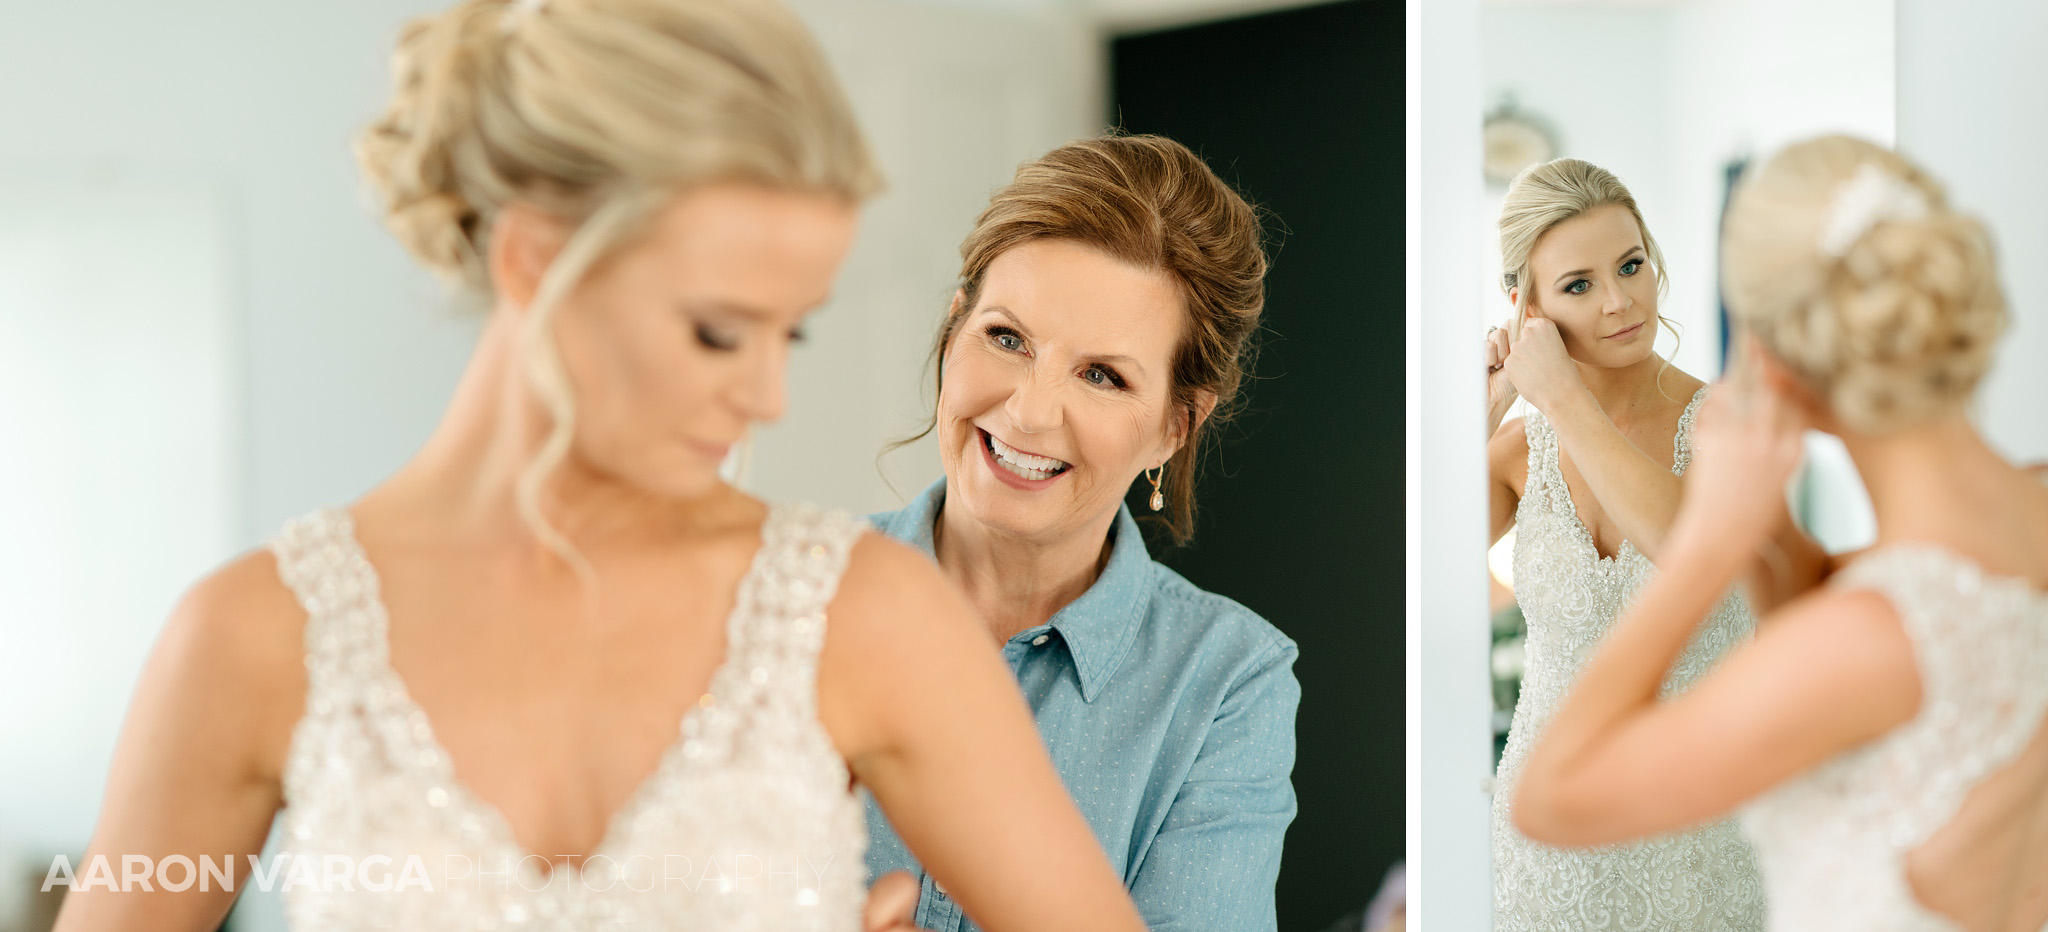 08 mom helping bride get ready - Amy + Bill | Montour Heights Country Club Wedding Photos